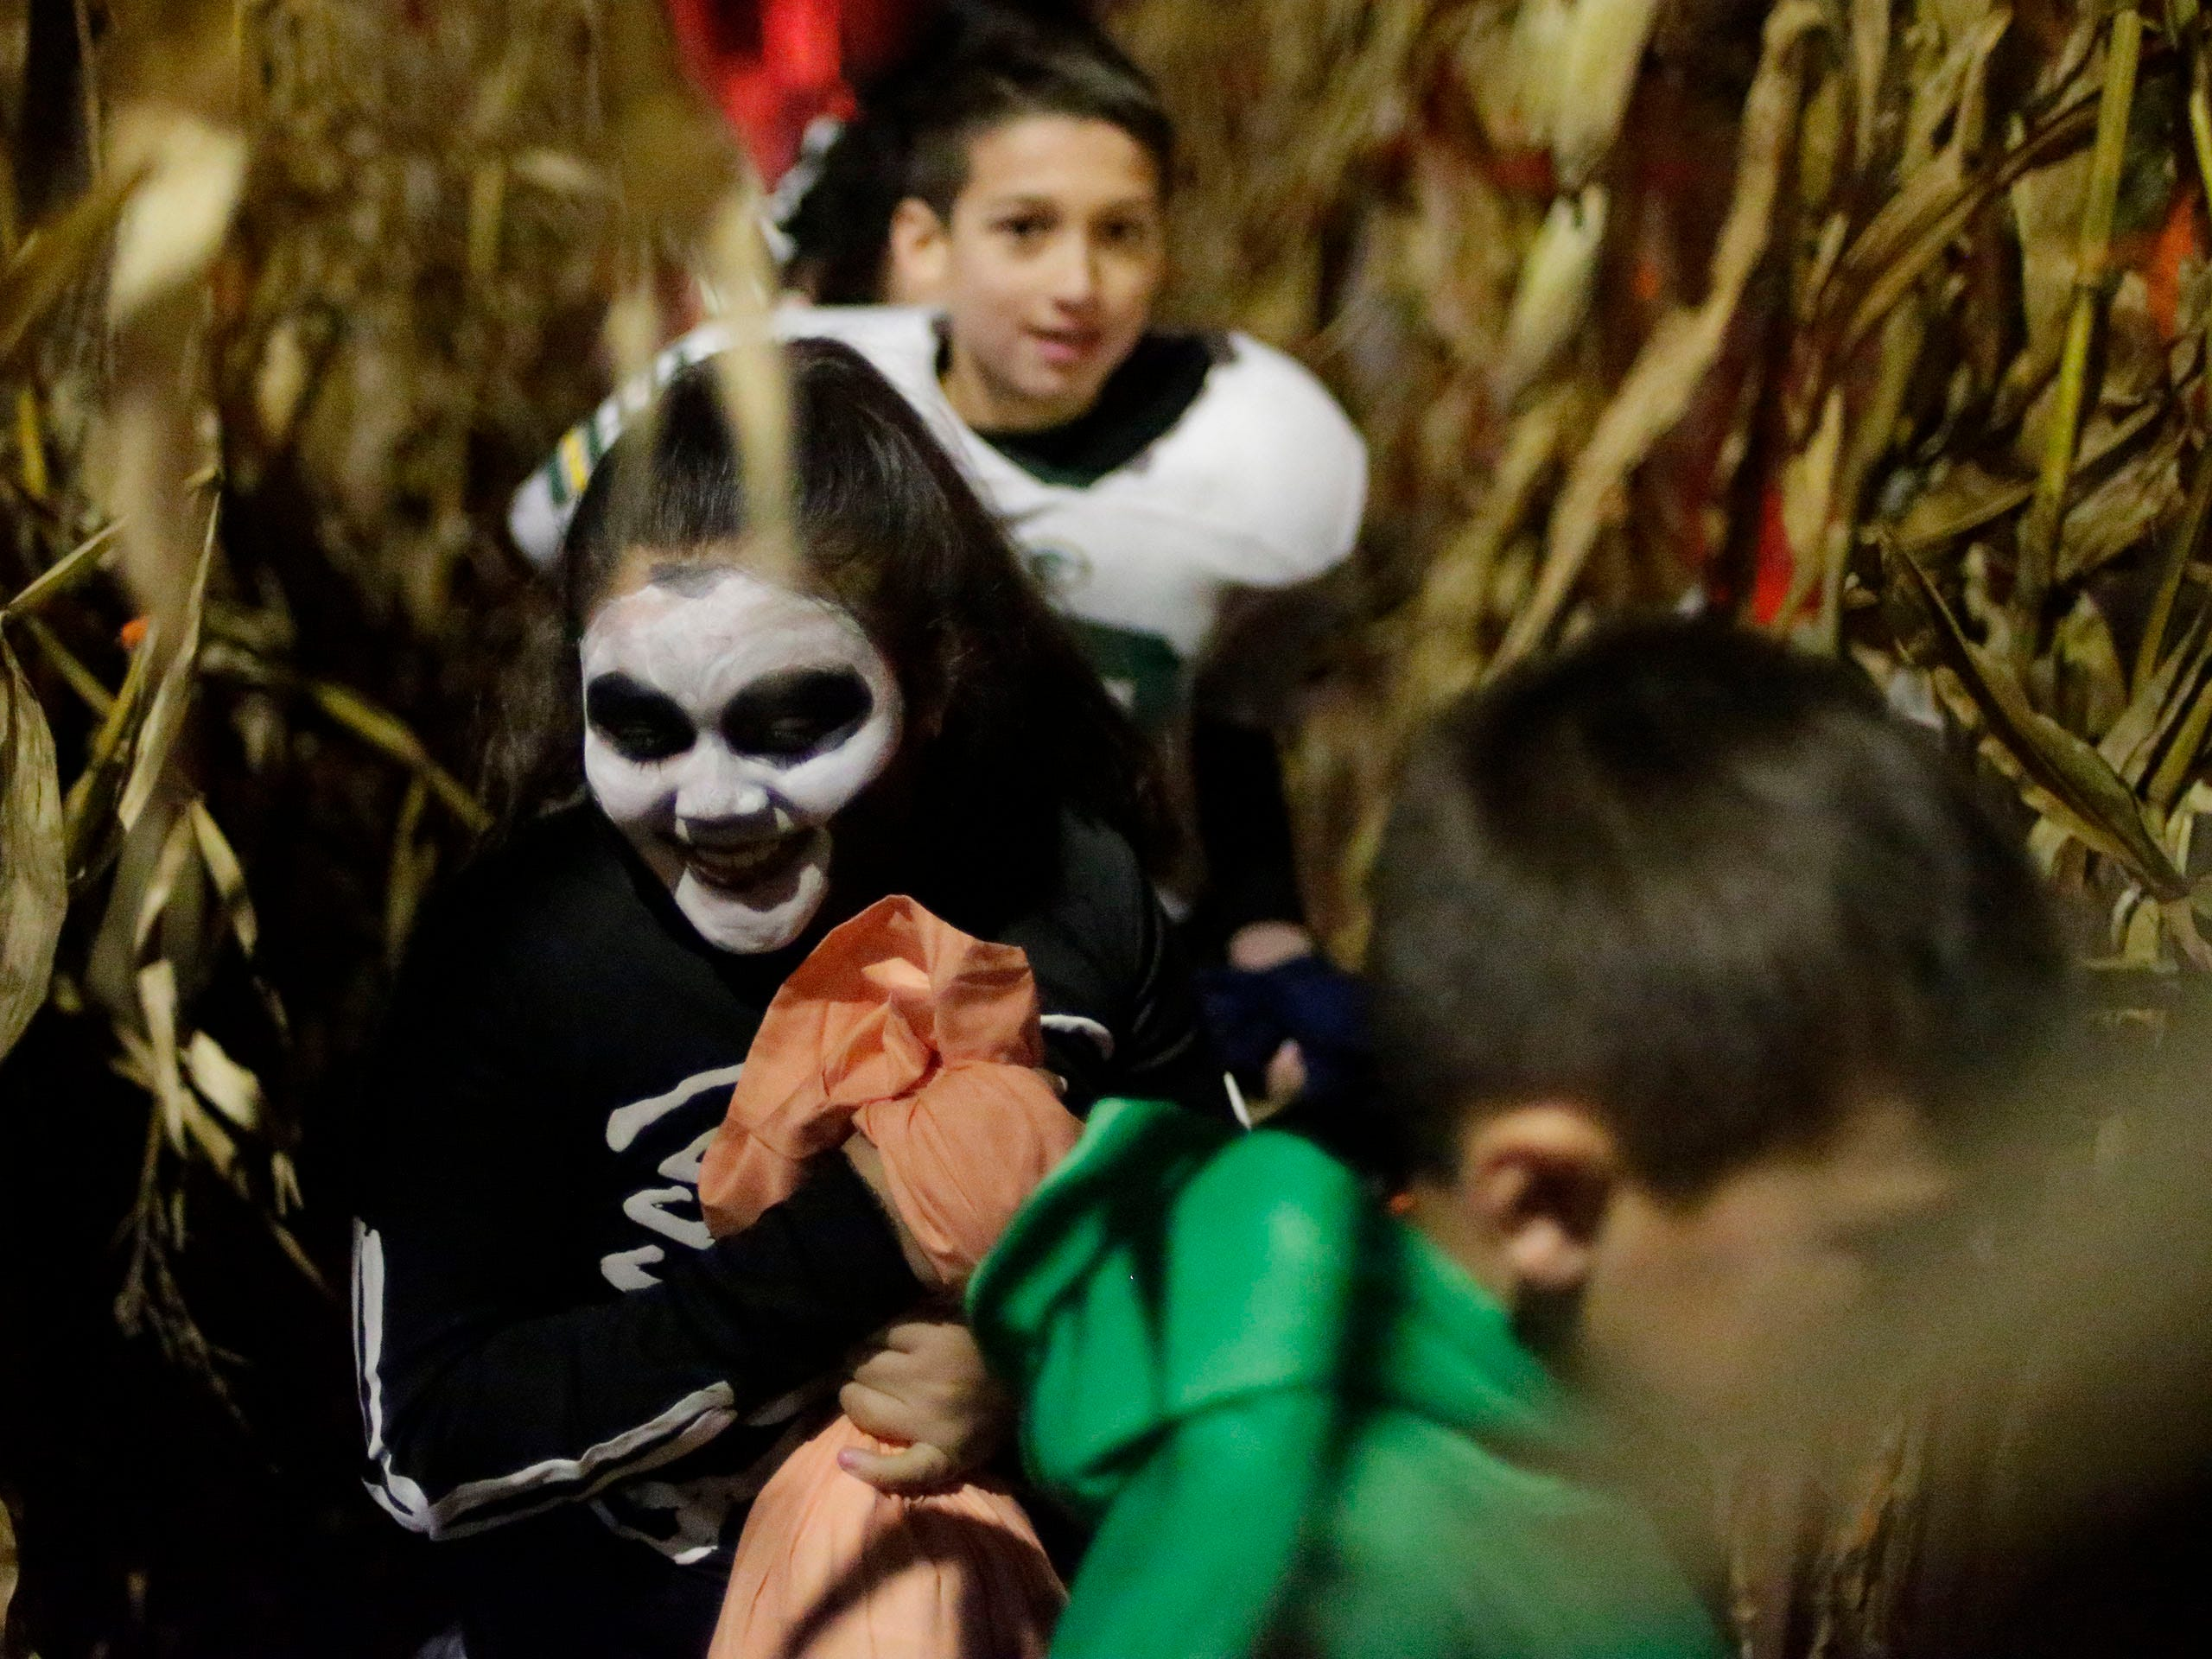 Trick or Treaters scamper through Scott Grunert's corn maze at his haunted yard, Wednesday, October 31, 2018, in Sheboygan, Wis.